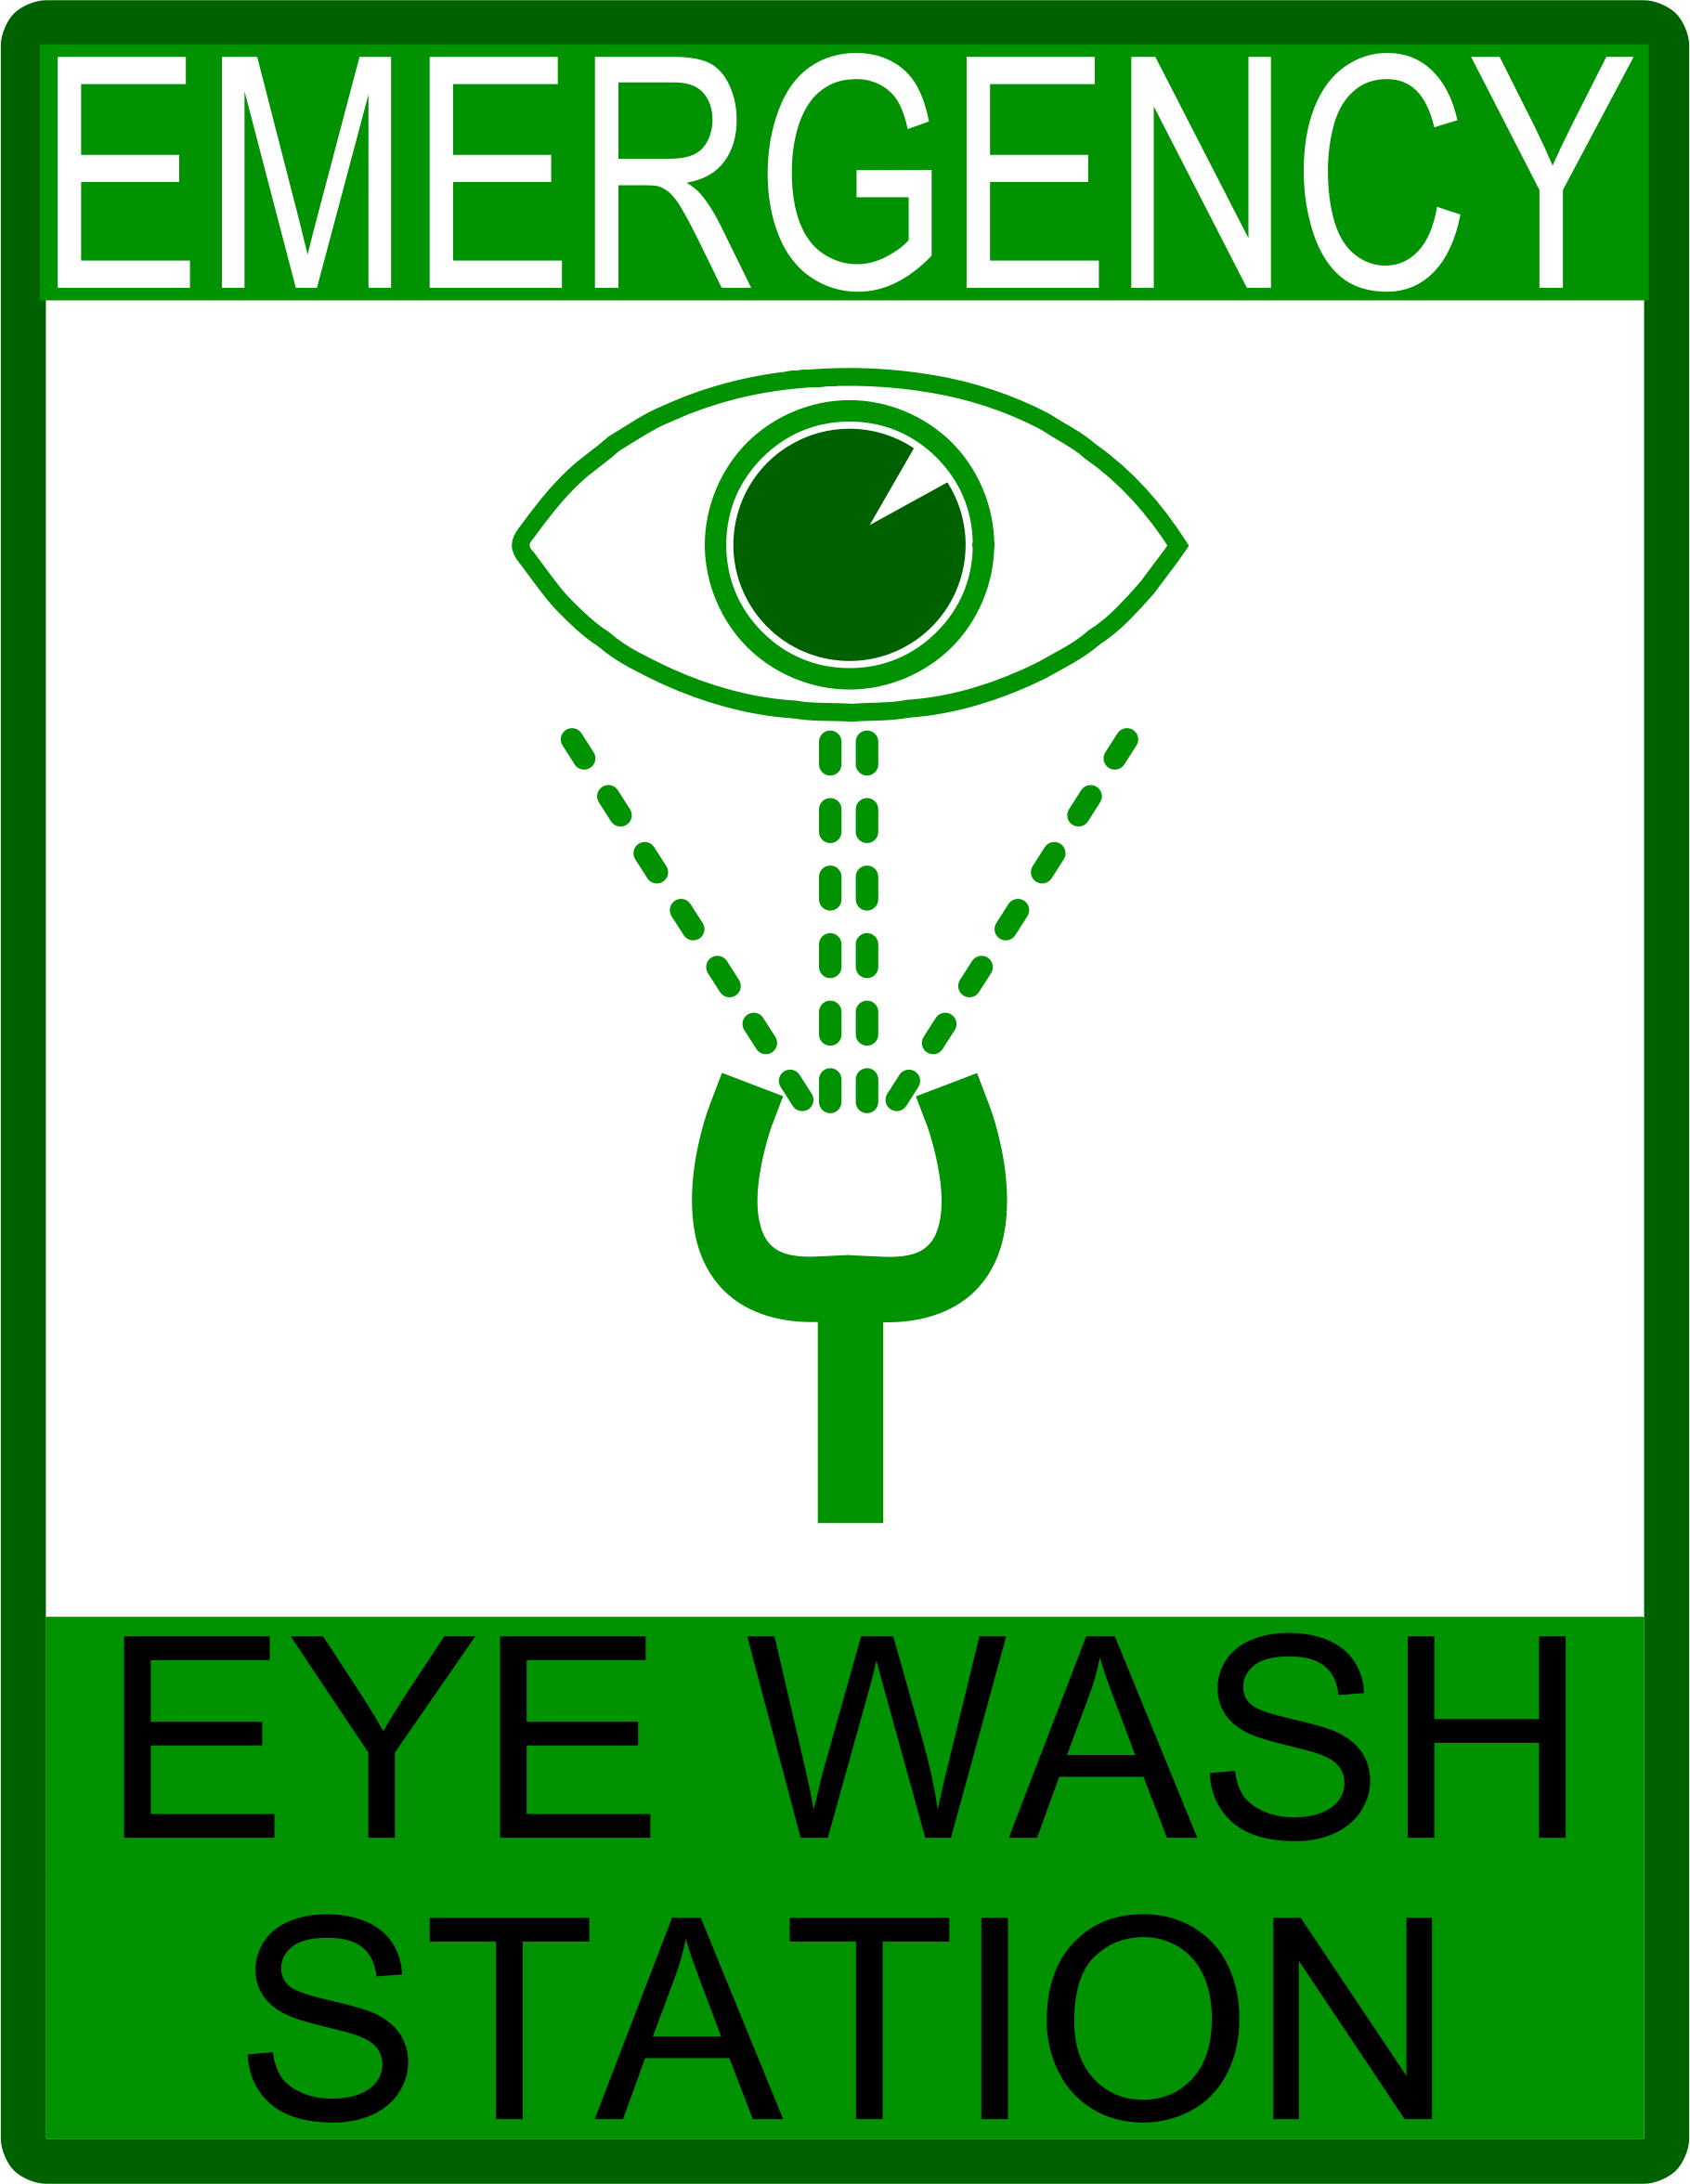 Emergency Eye Wash Station by Arvin61r58